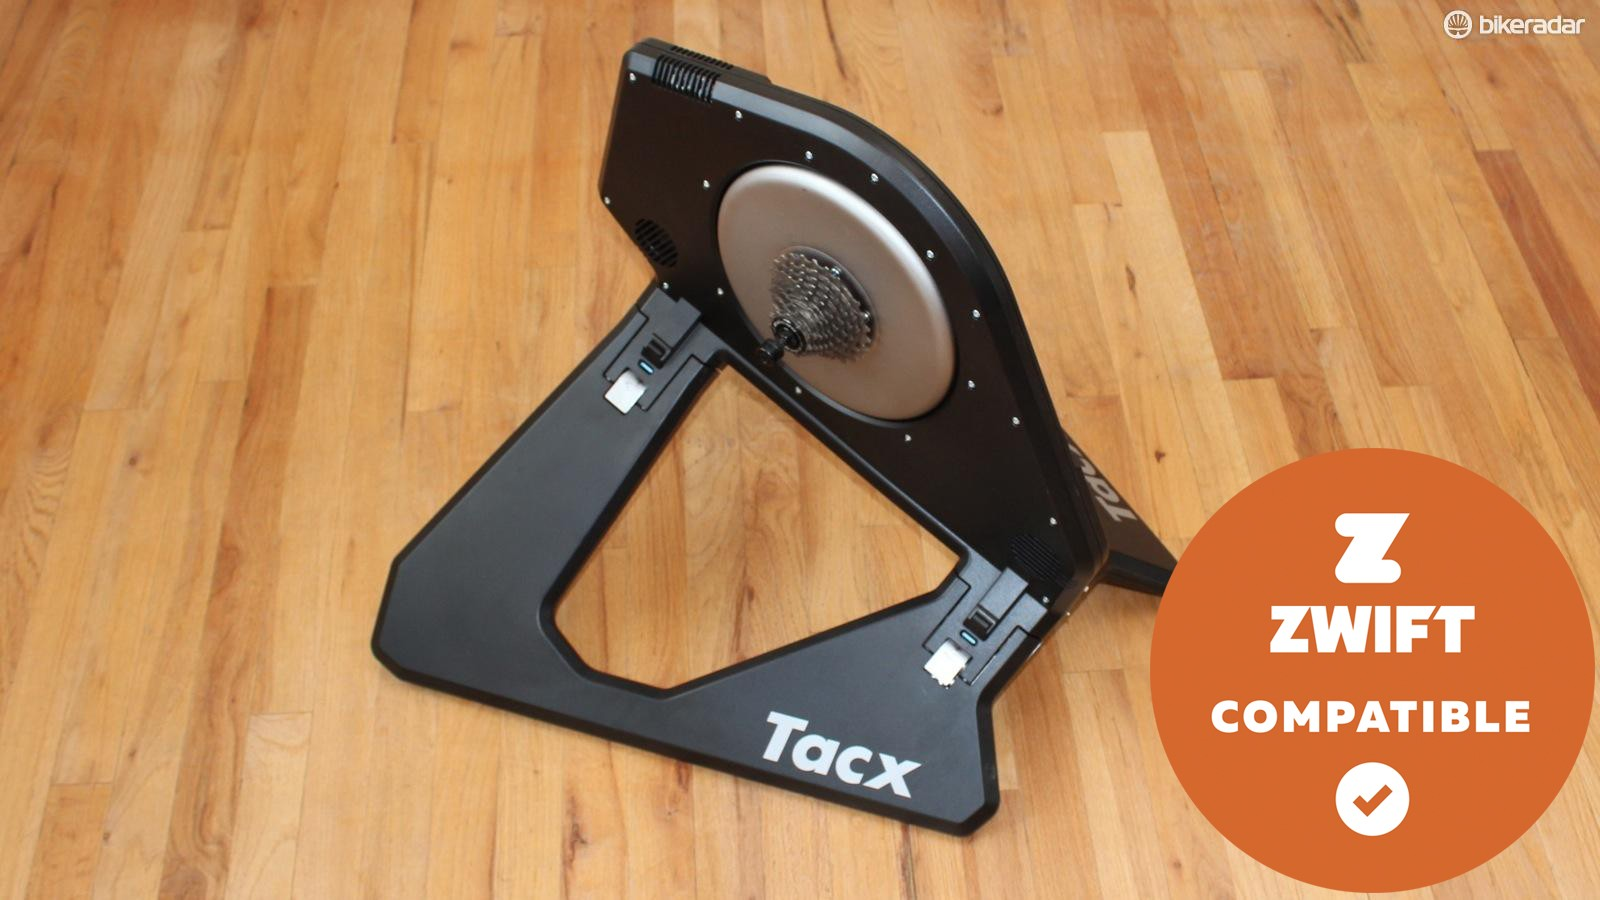 The Tacx Neo offers a great indoor training experience